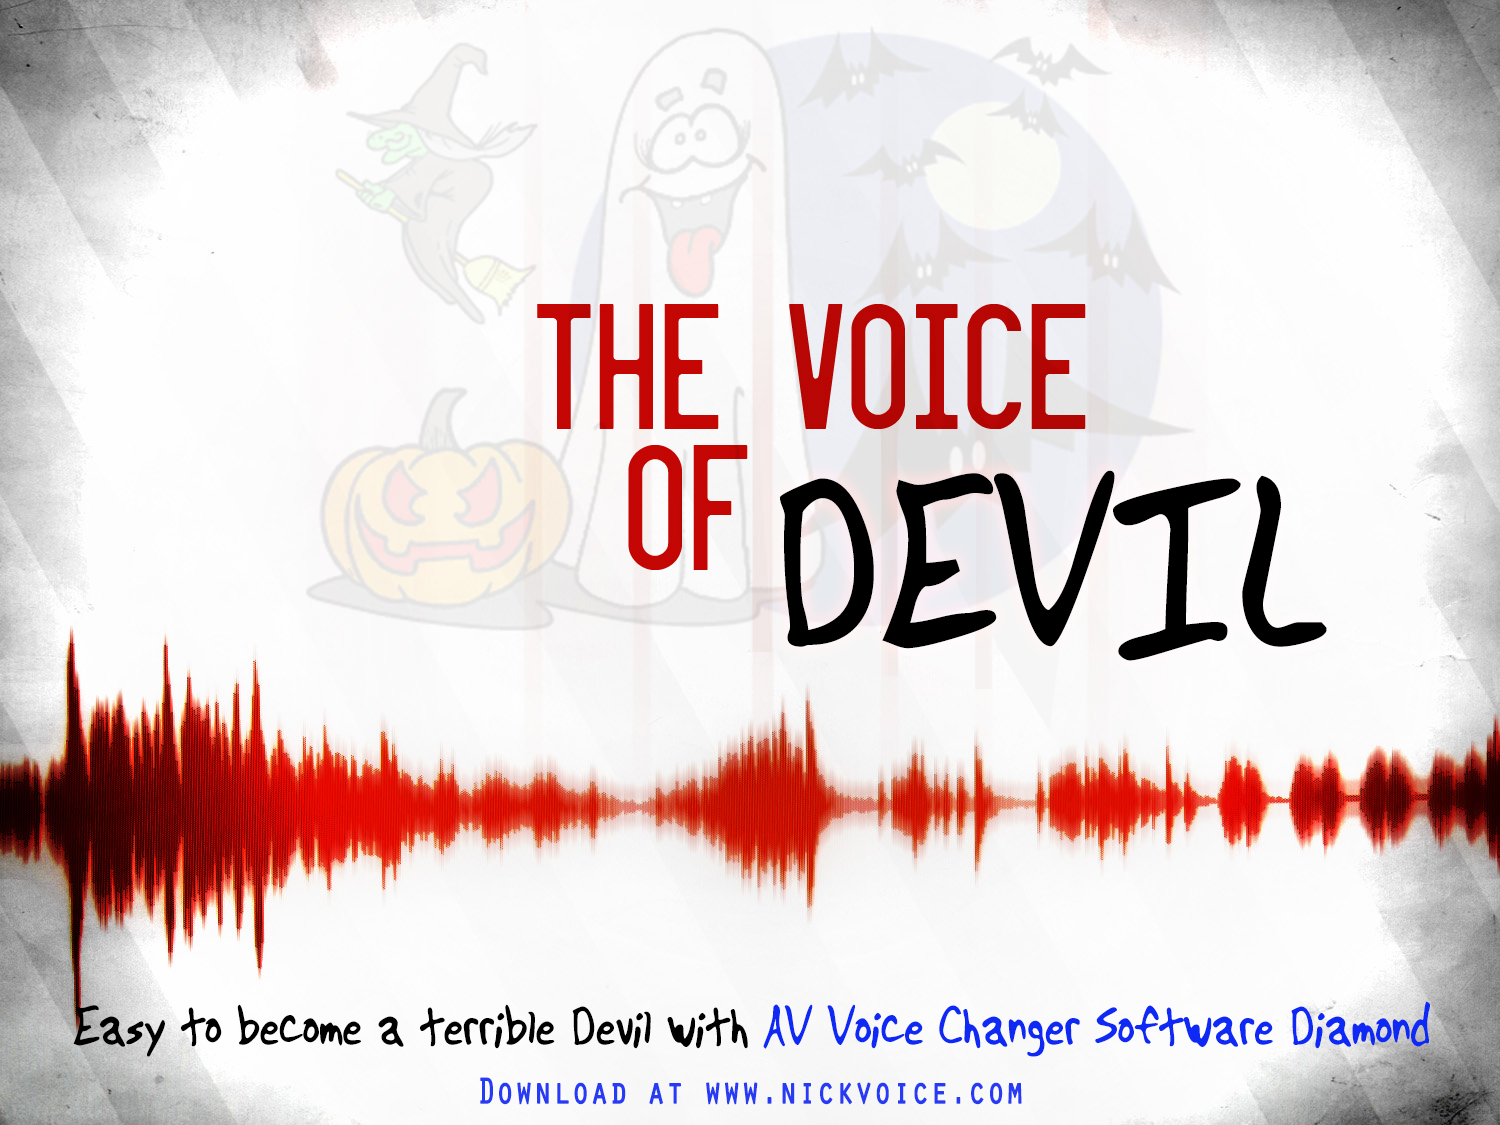 Easy to become a terrible Devil with AV Voice Changer Software Diamond